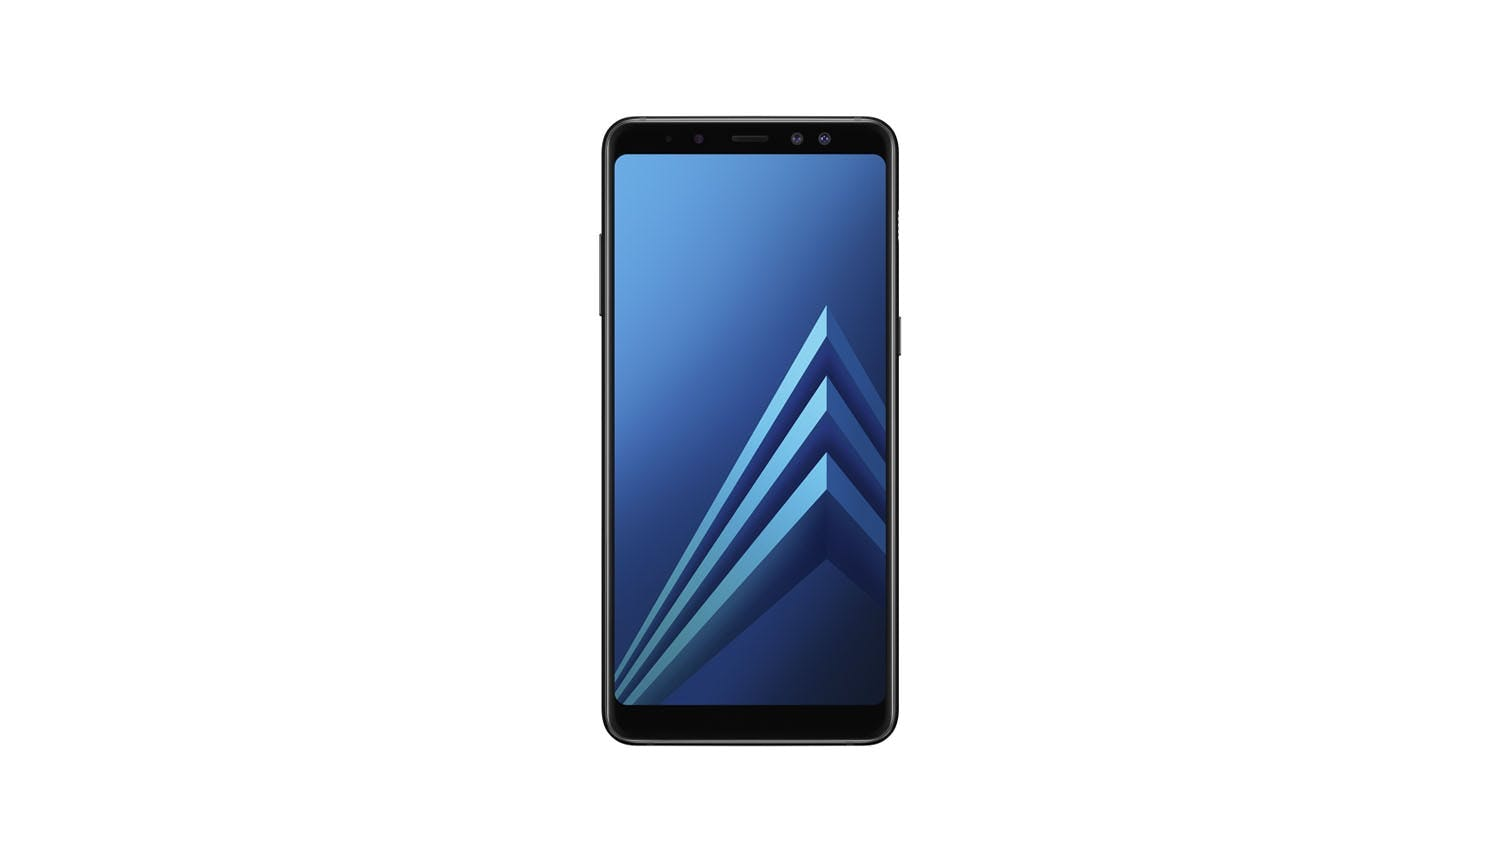 2degrees Samsung Galaxy A8+ Smartphone